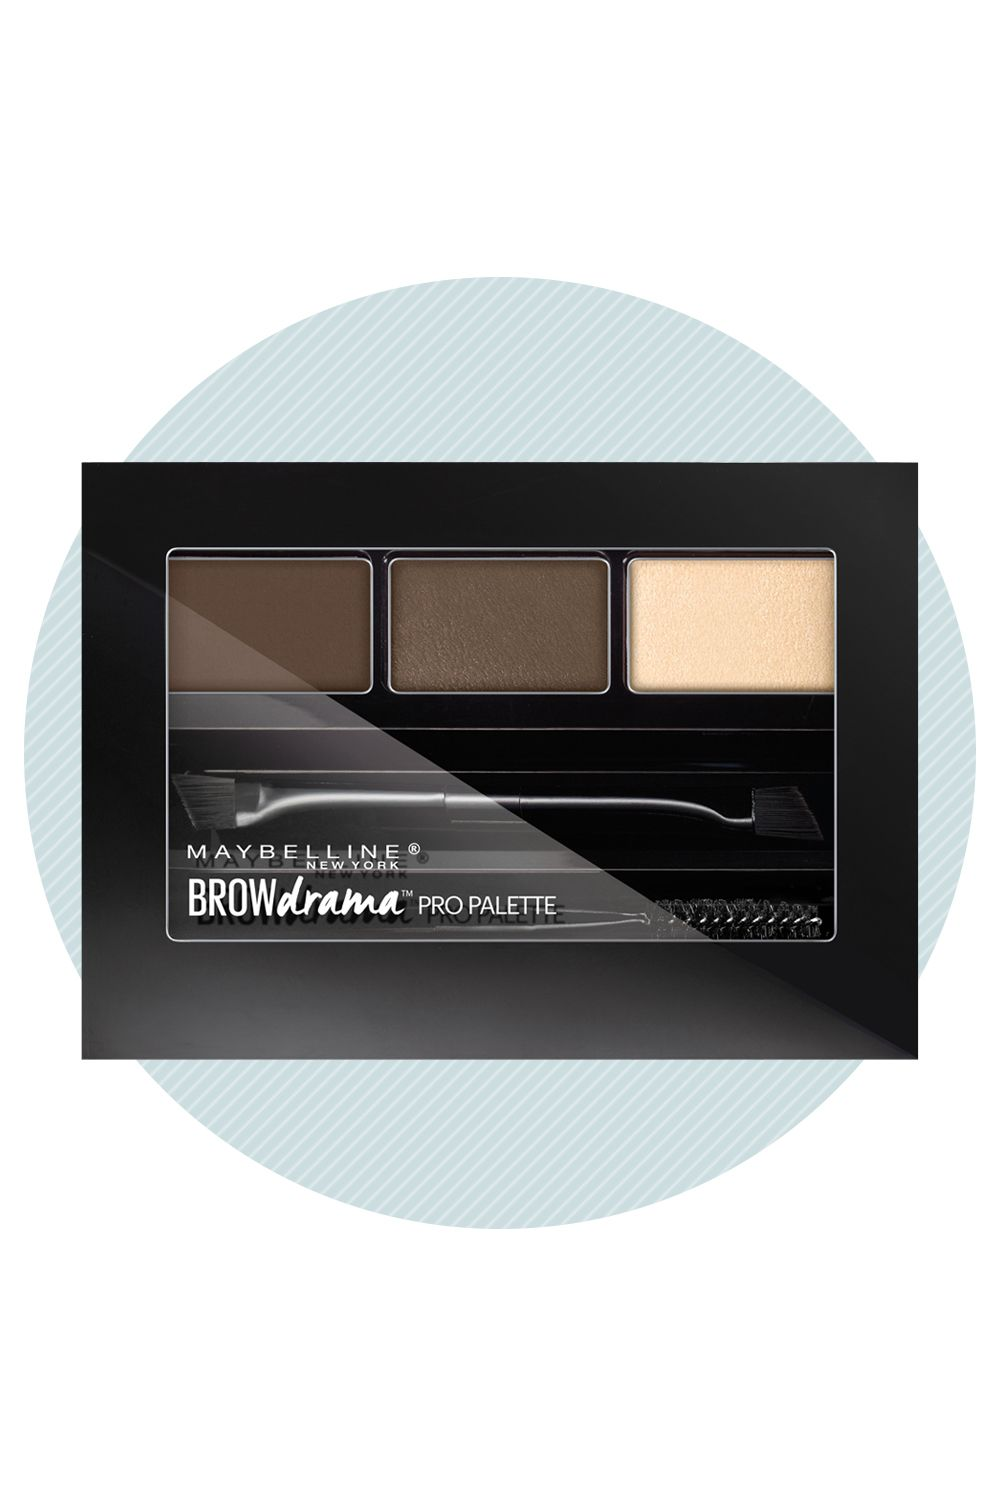 """""""I think a lot of women go wrong when they try to [choose a brow color] that's right on the nose,"""" says makeup artist Vincent Oquendo (a go-to for supermodels like Suki Waterhouse, Gigi and Bella Hadid). """"Your powder should be one shade lighter than the actual brow hair."""" Why? The oils in your skin often cause the pigment to oxidize and look darker once applied. Try Maybelline New York Drama Pro Palette, which simplifies your search by formulating pigments specifically for blondes…"""